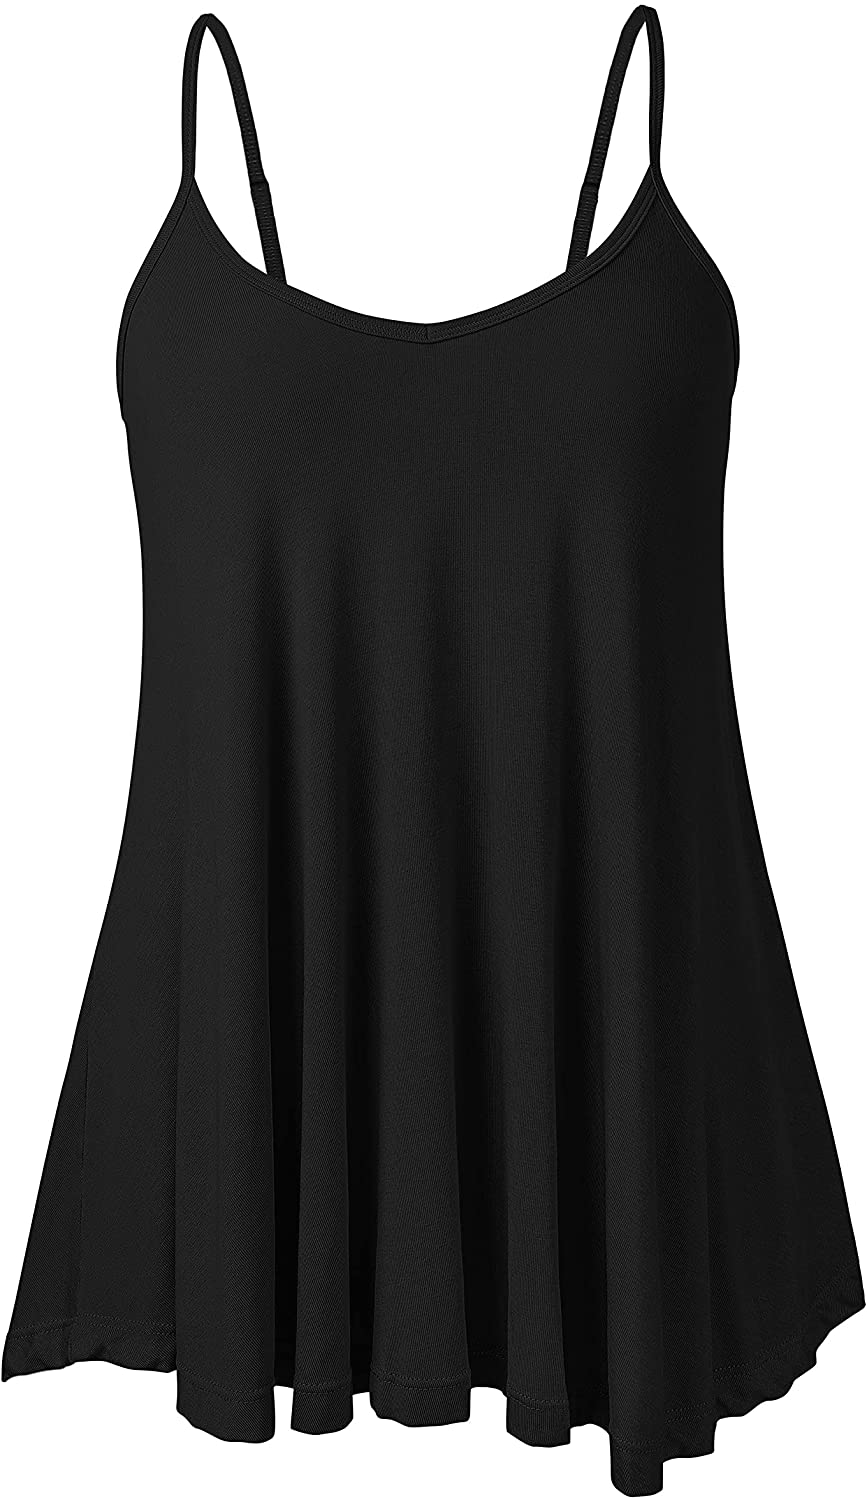 V FOR CITY Flowy Tank Tops for Women Summer Tops Sleeveless V Neck Adjustable Spaghetti Blouses Fashion Casual Pleated Shirts